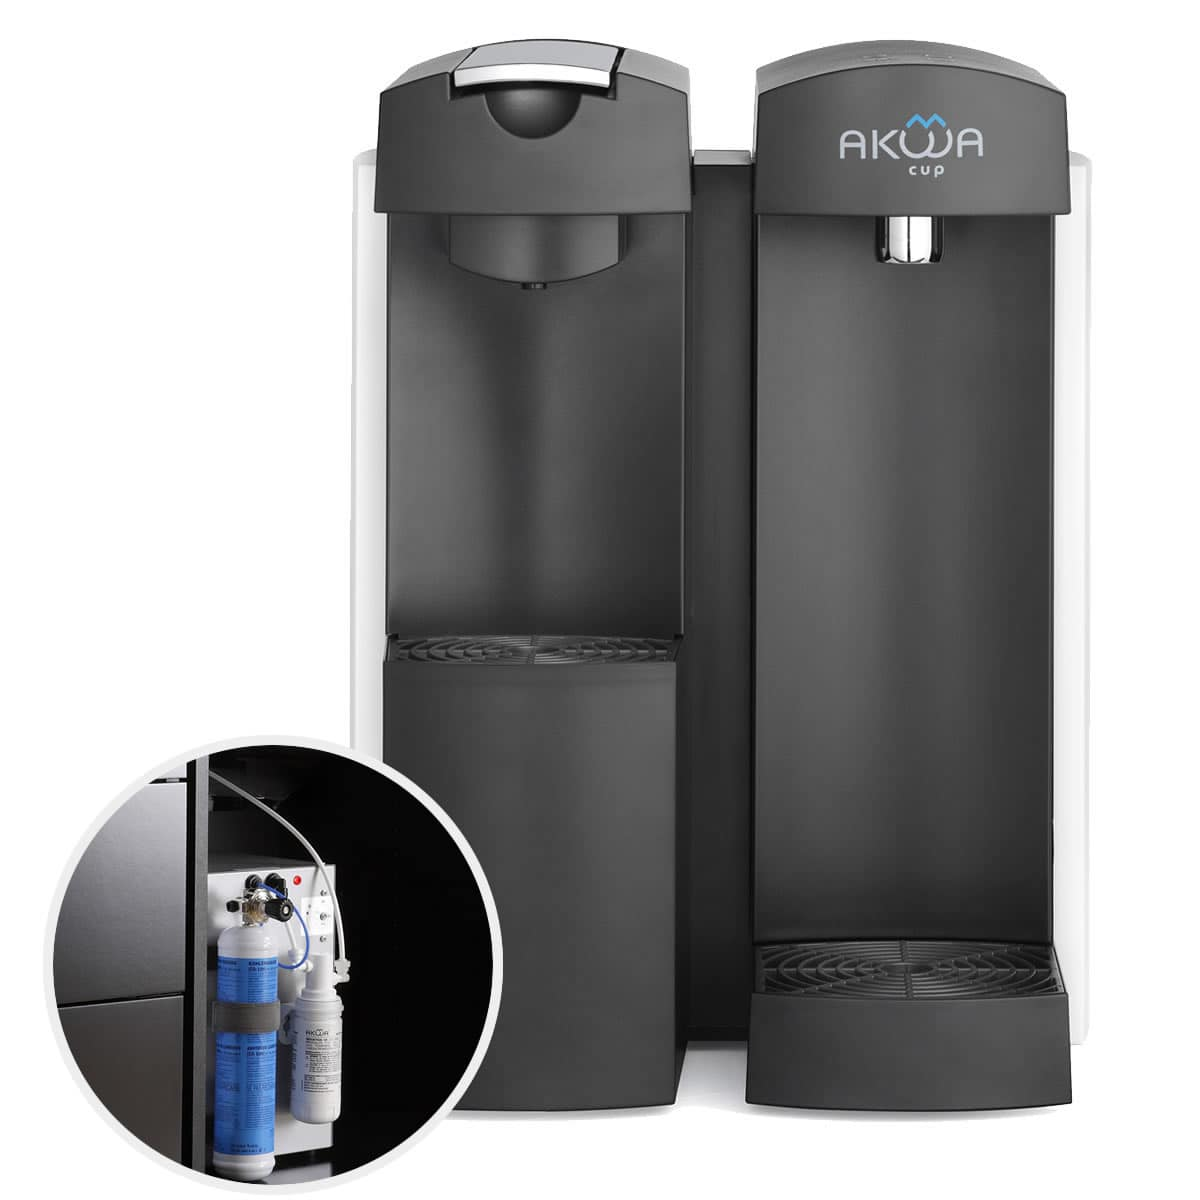 Water and coffee dispenser